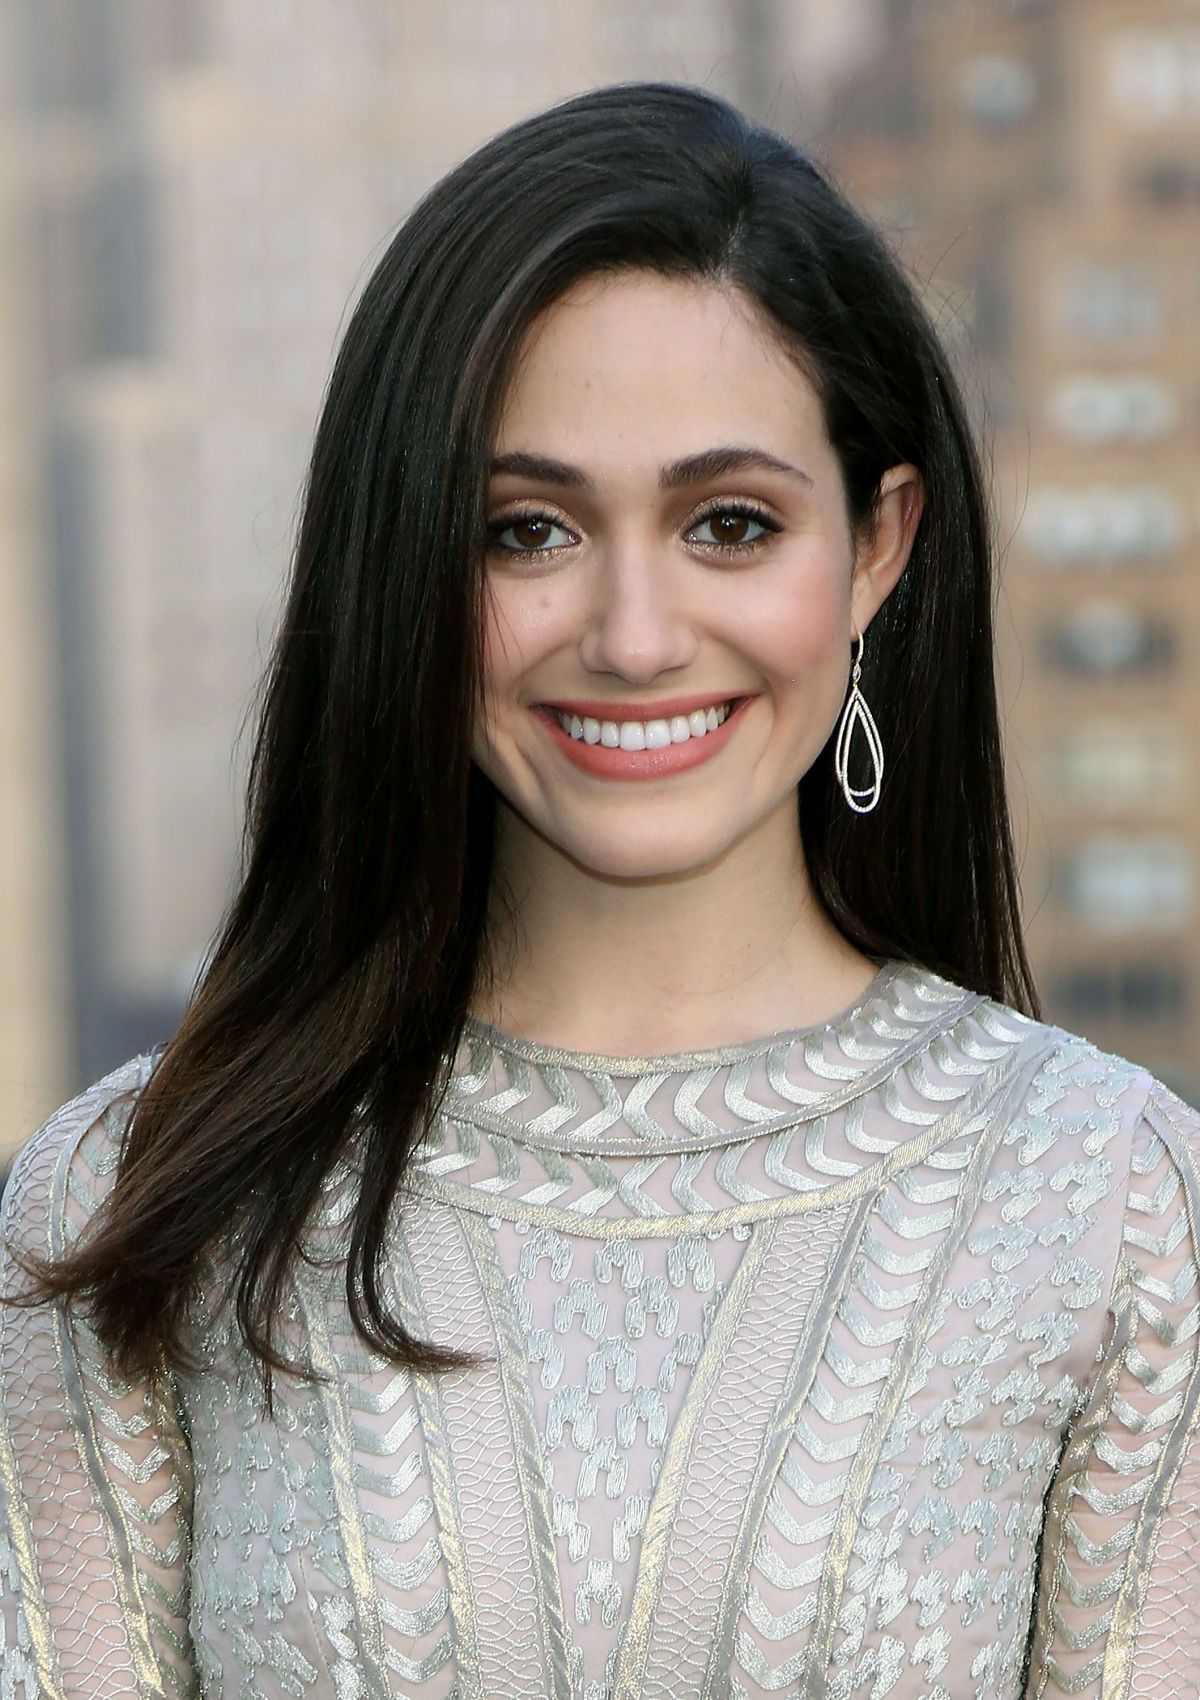 emmy rossum hd wallpaper from gallsource | just wanna draw them